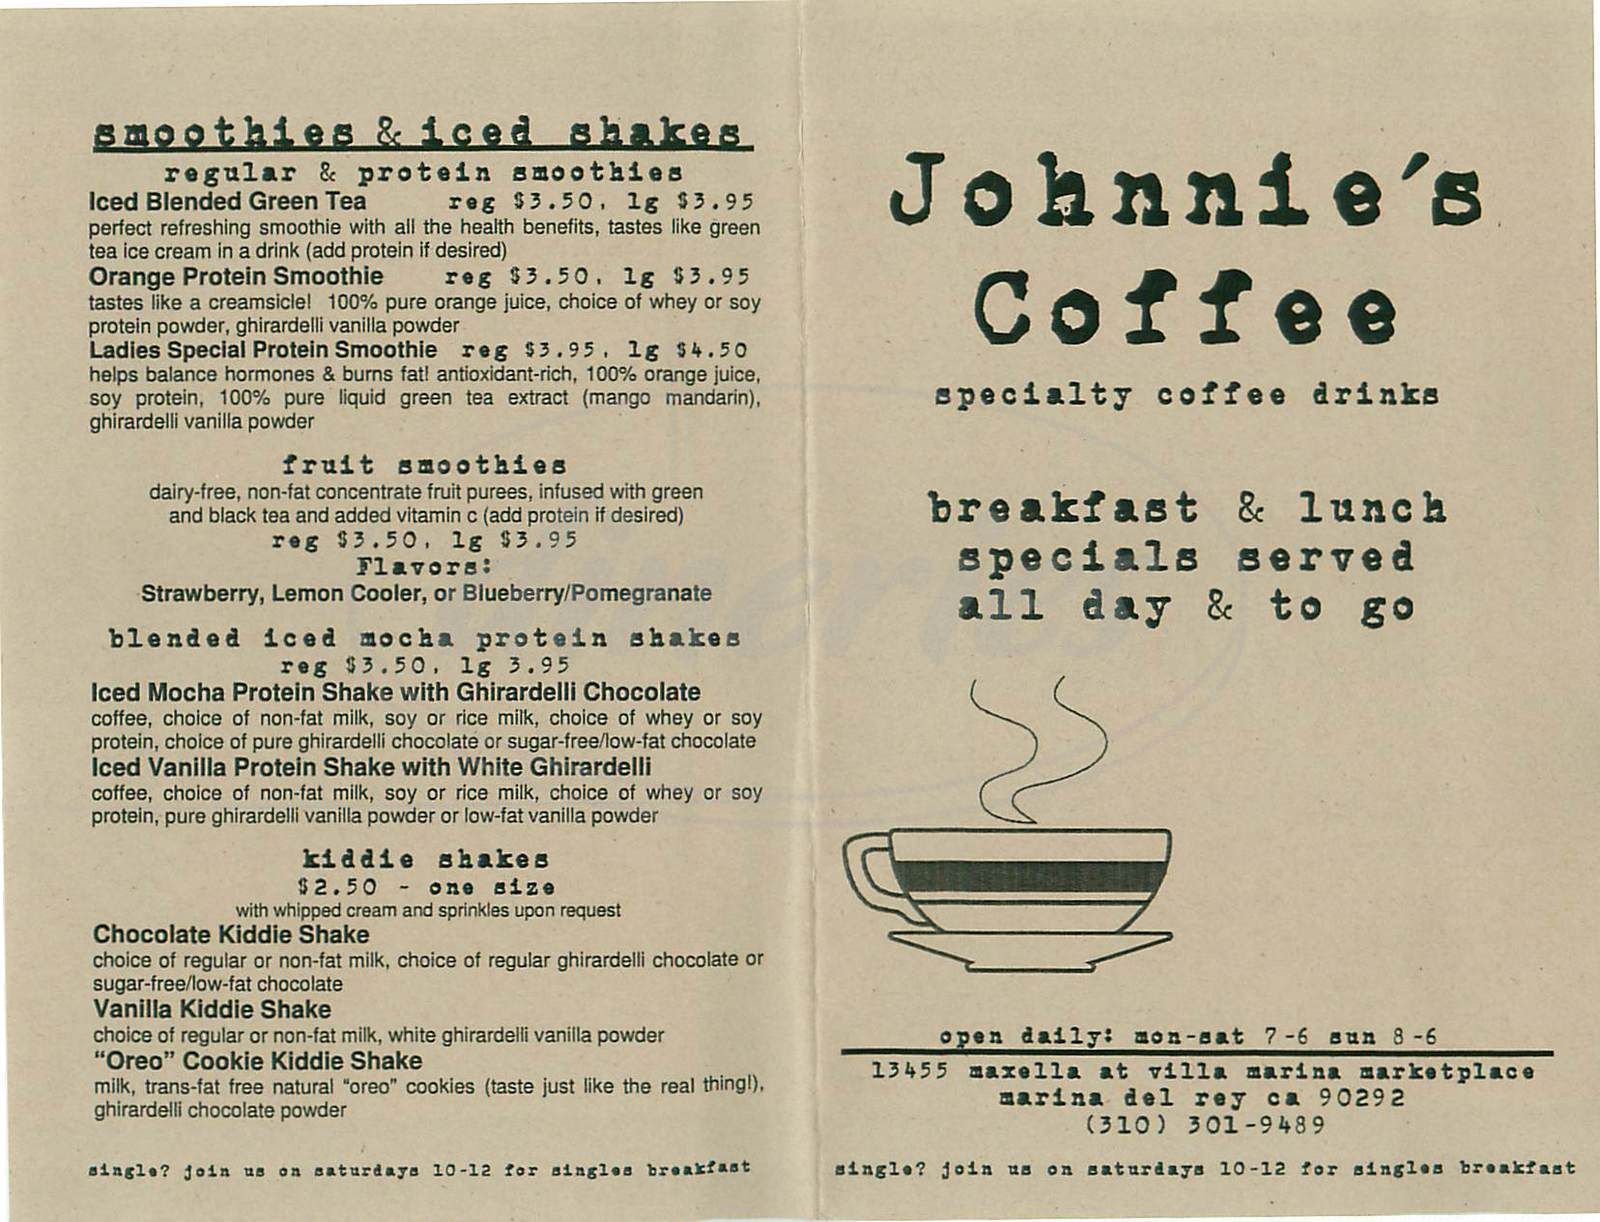 menu for Johnnie's Coffee